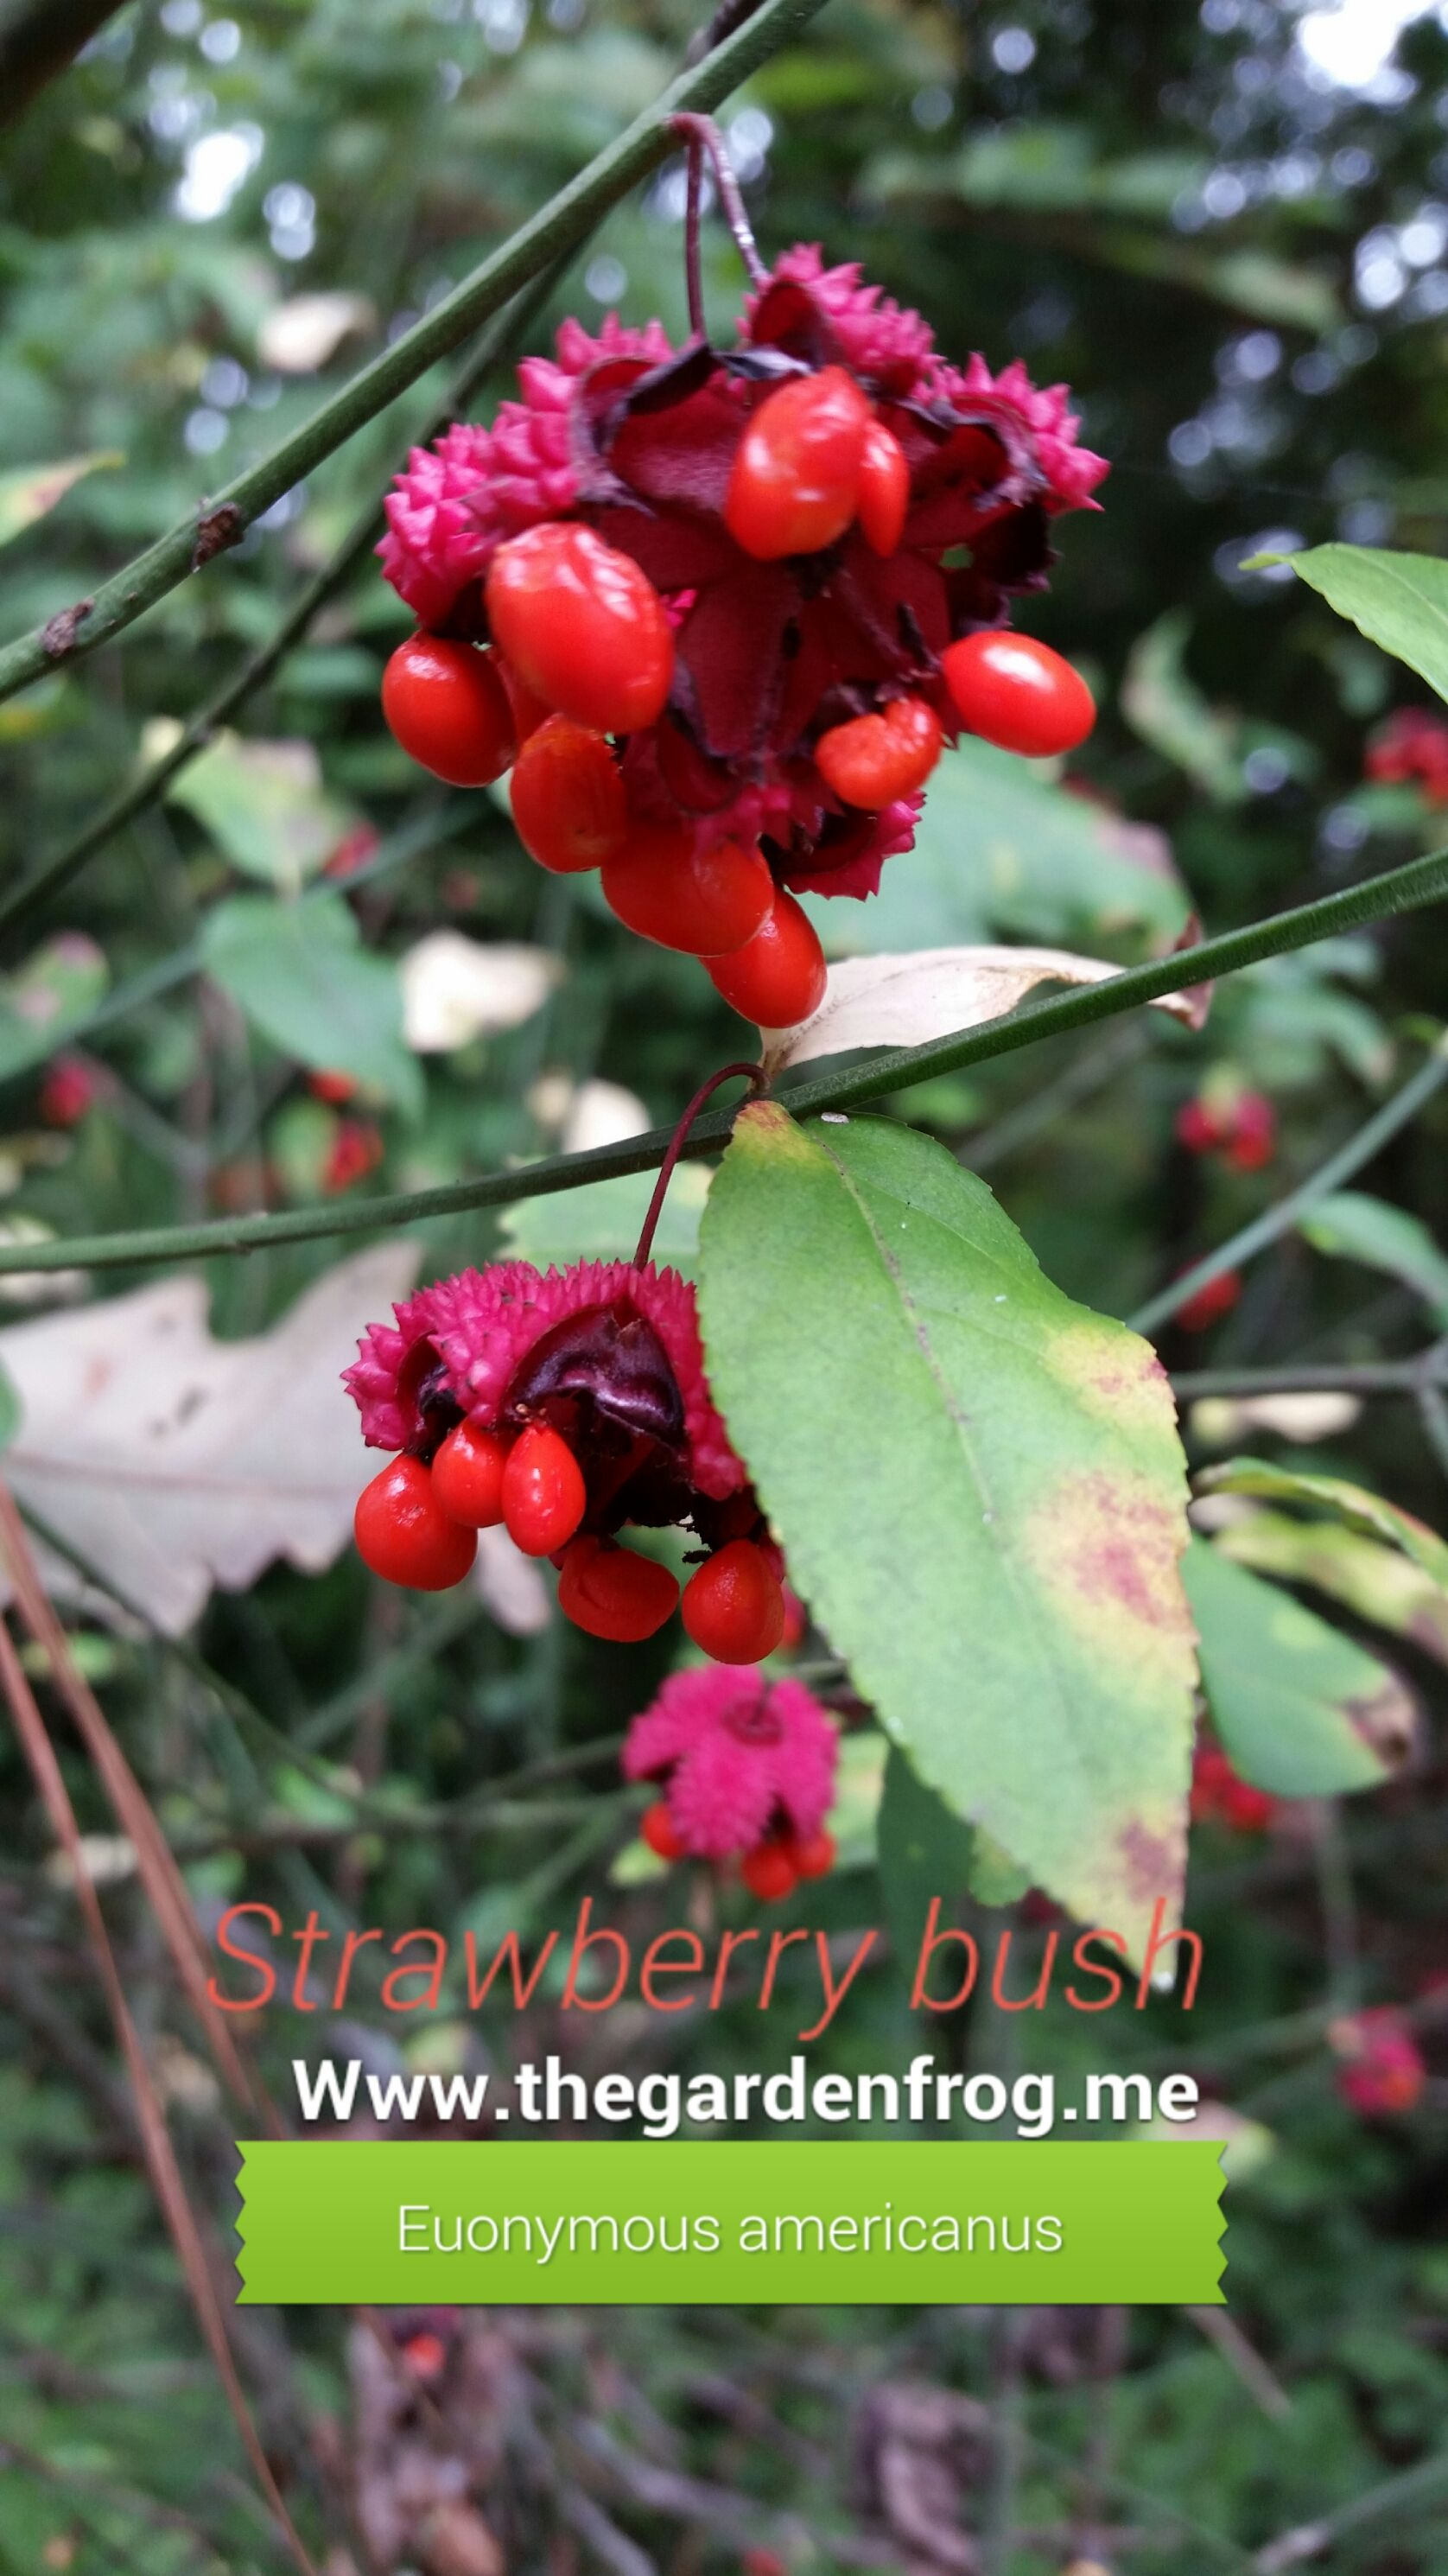 Euonymous americanus STrawberry bush woodland native, deer eat it too